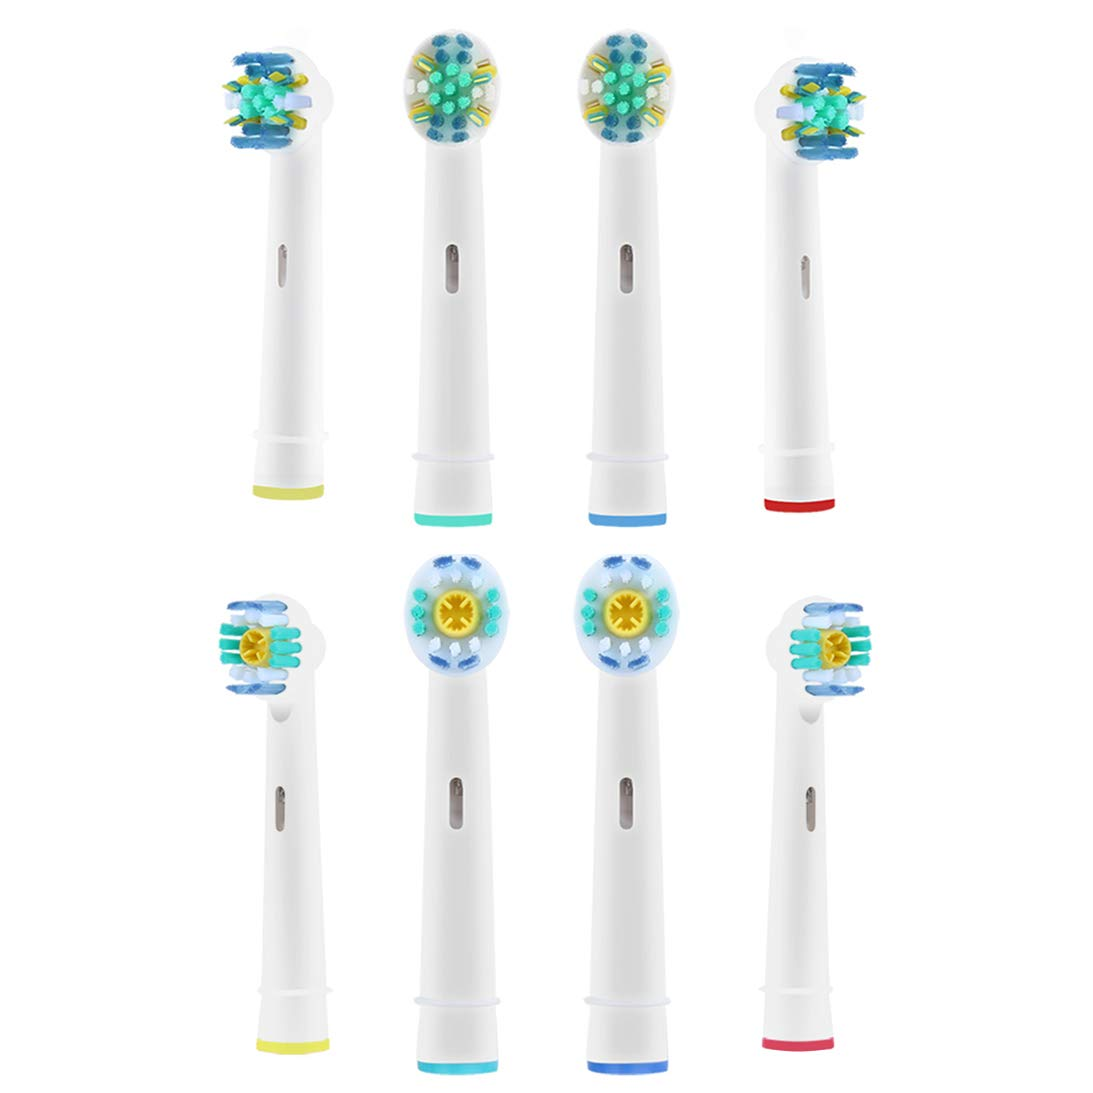 Toothbrush Replacement Heads for Braun Oral B Professional Care Triumph Vitality  Floss Action & 3D White  Remove Plaque and Teeth Whitening, Variety 8 Count by Lanveda